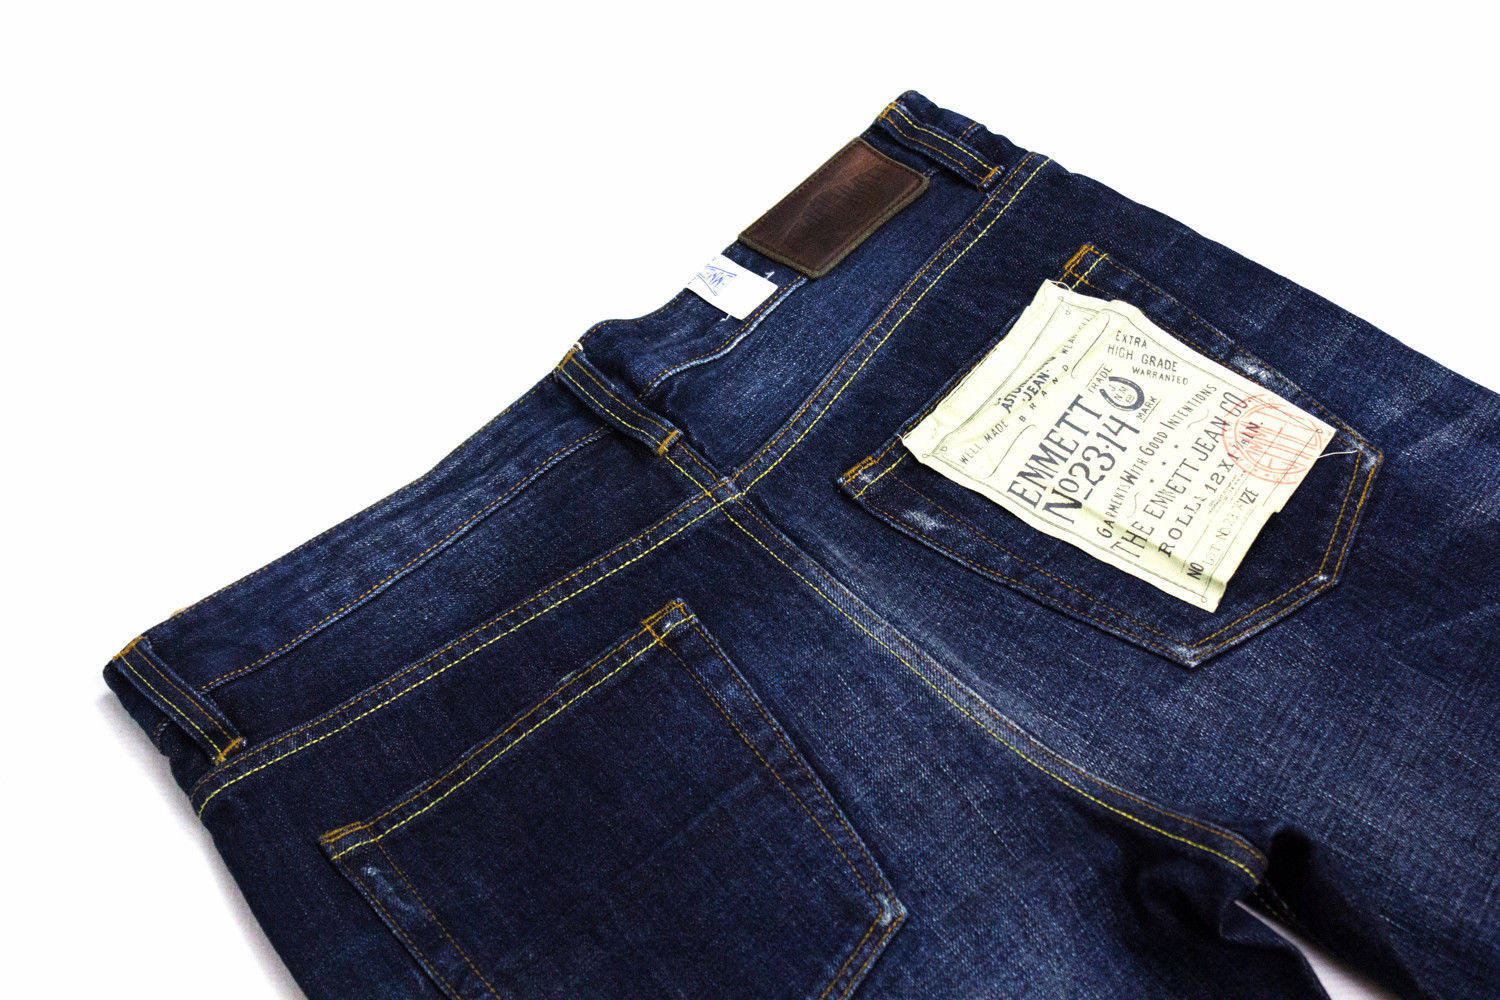 EMMETT Selvage Slim Straight Indigo Blue Jeans, 32/32 - secondfirst